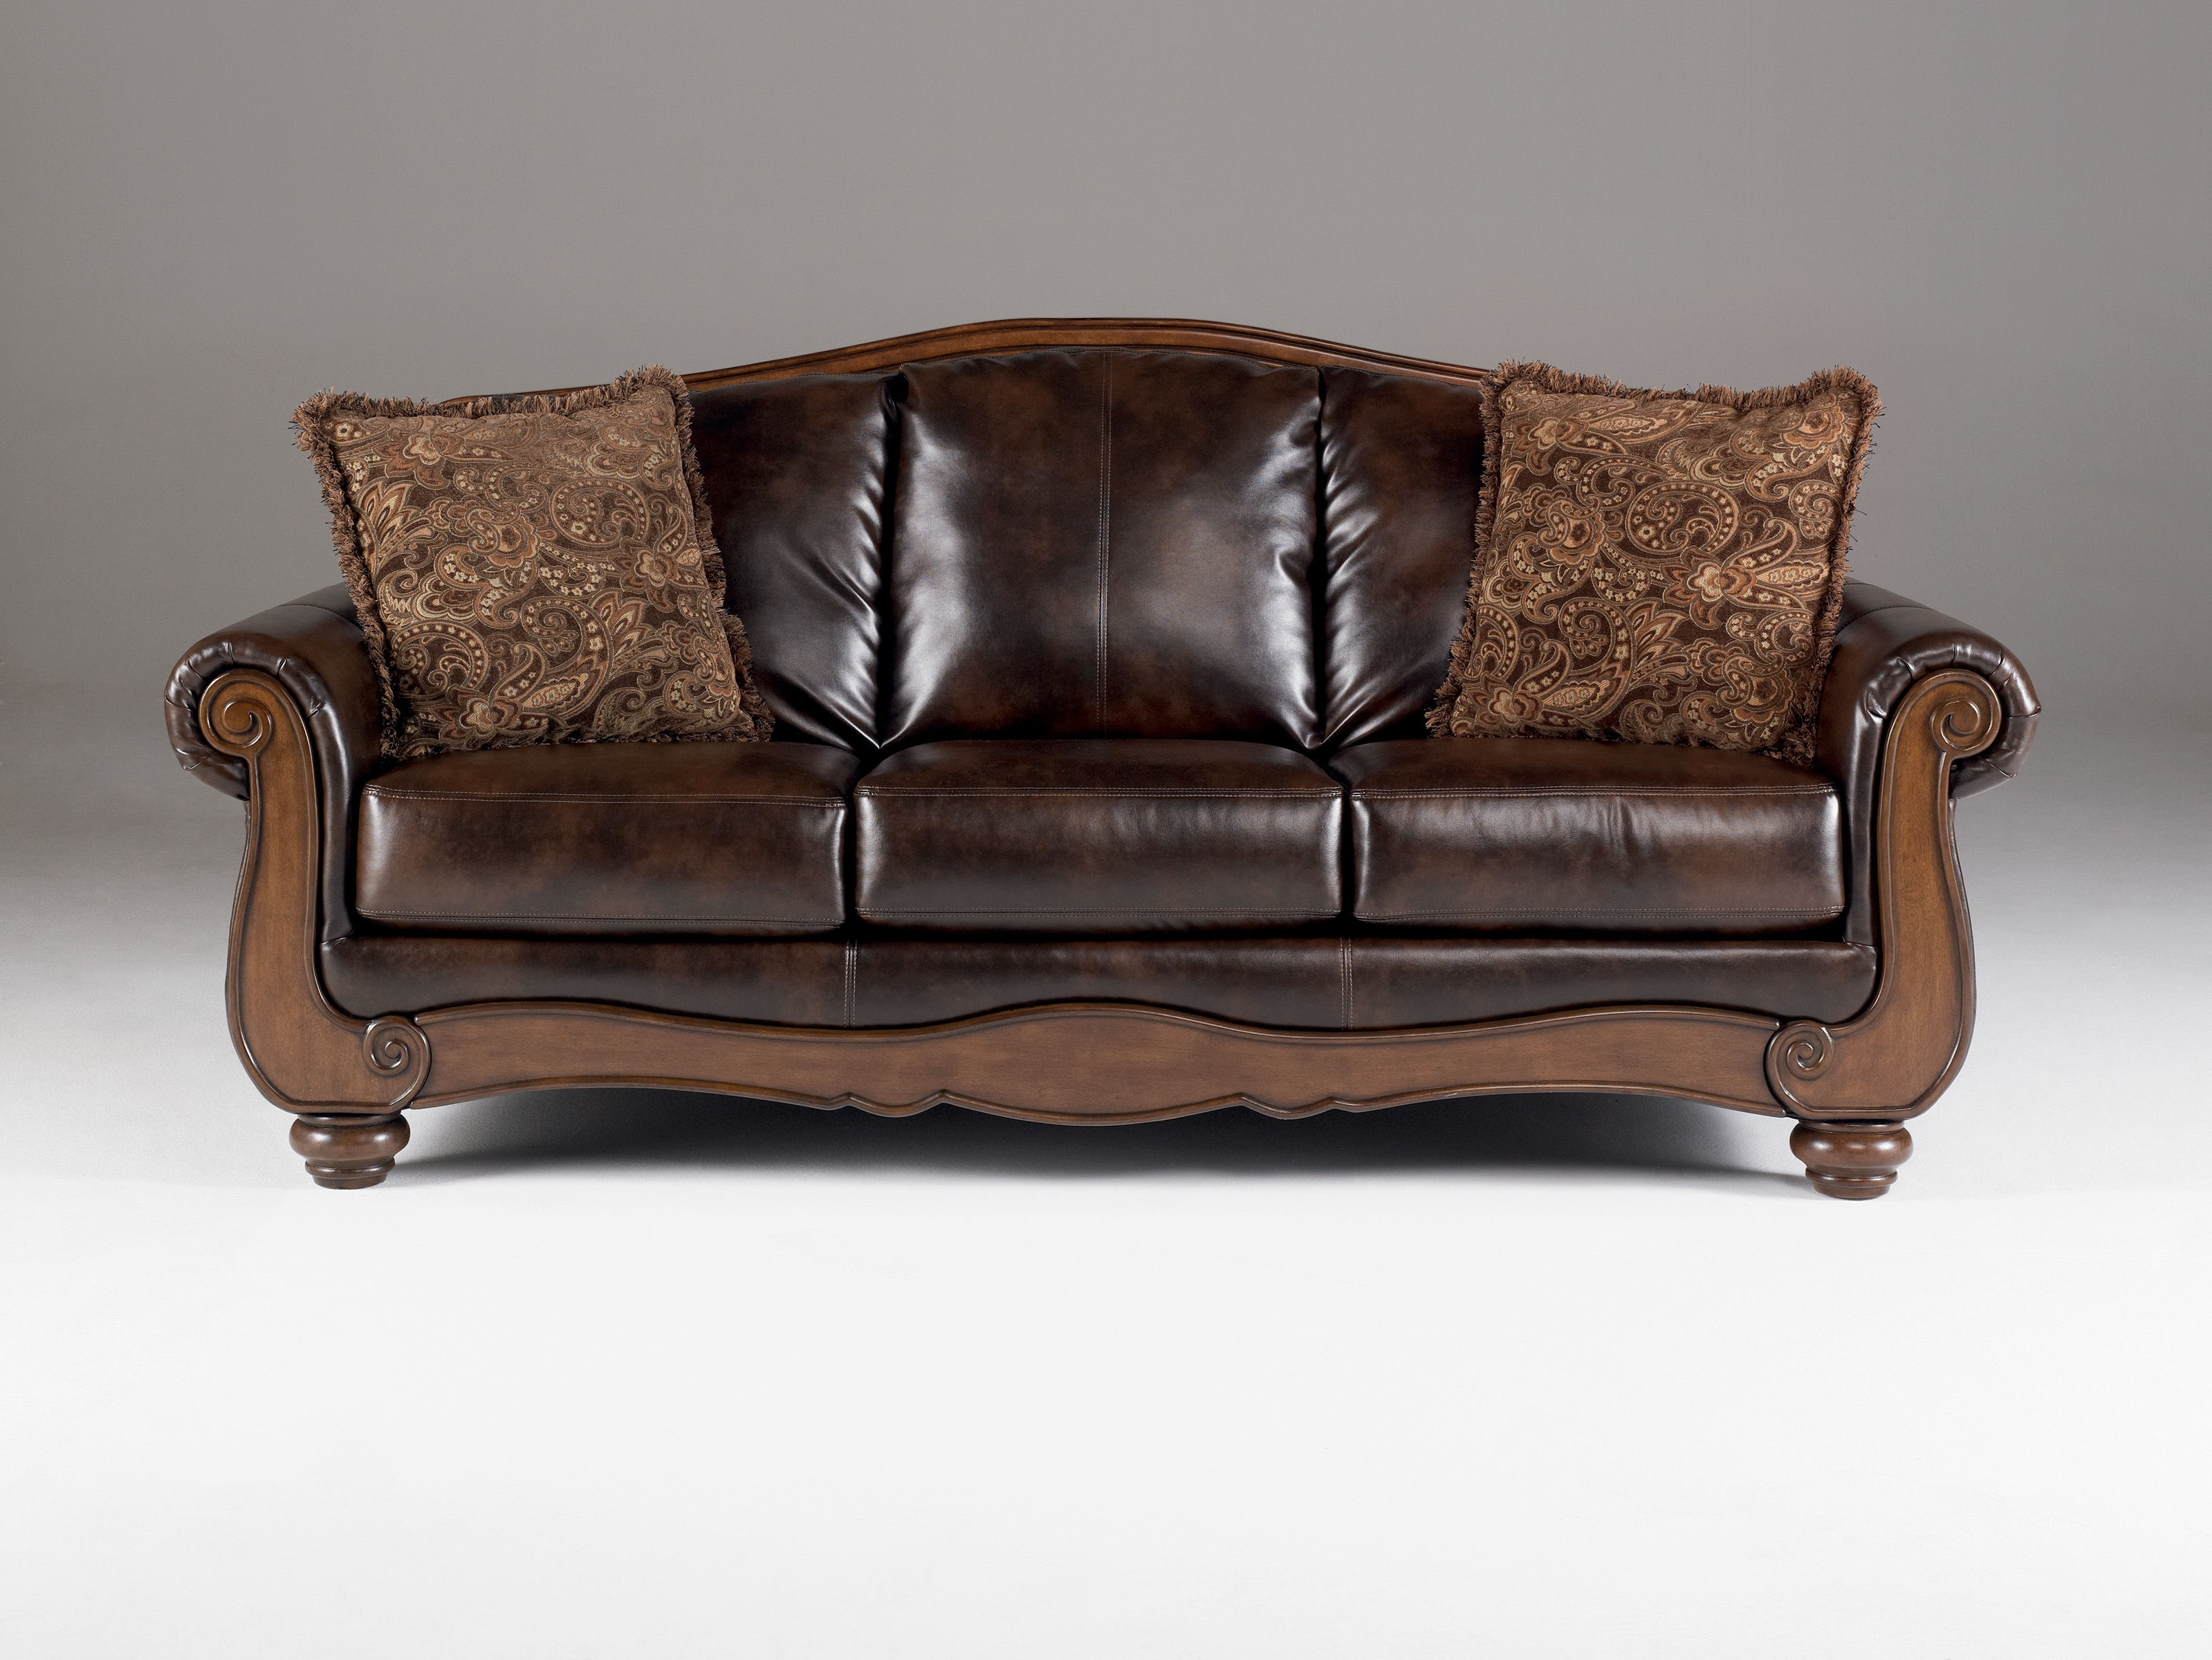 Barcelona Traditional Antique Faux Leather Sofa W/cushion Back For Popular Antique Sofas (View 20 of 20)